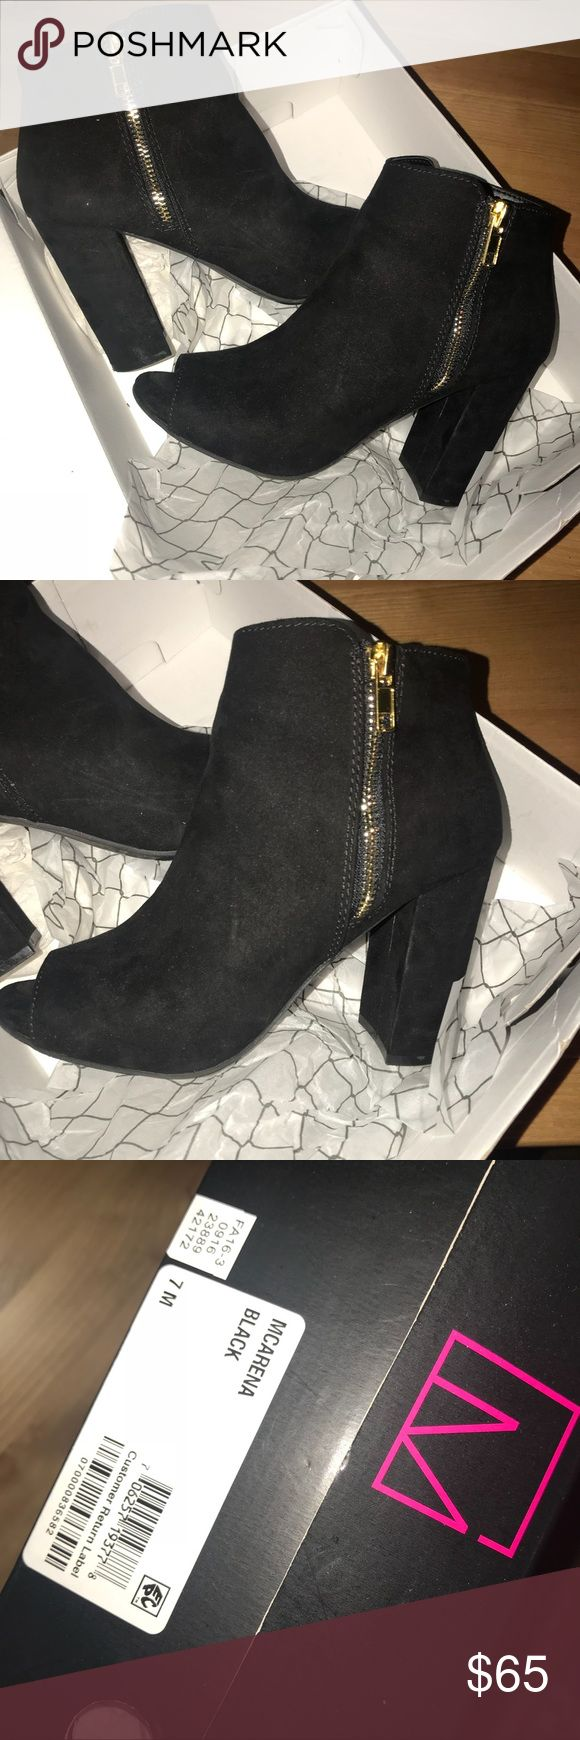 Material Girl open toed blocked heels SIZE 7 Mint condition black open toes block heels. I wore maybe 4 times max. Perfect for any occasions Material Girl Shoes Ankle Boots & Booties